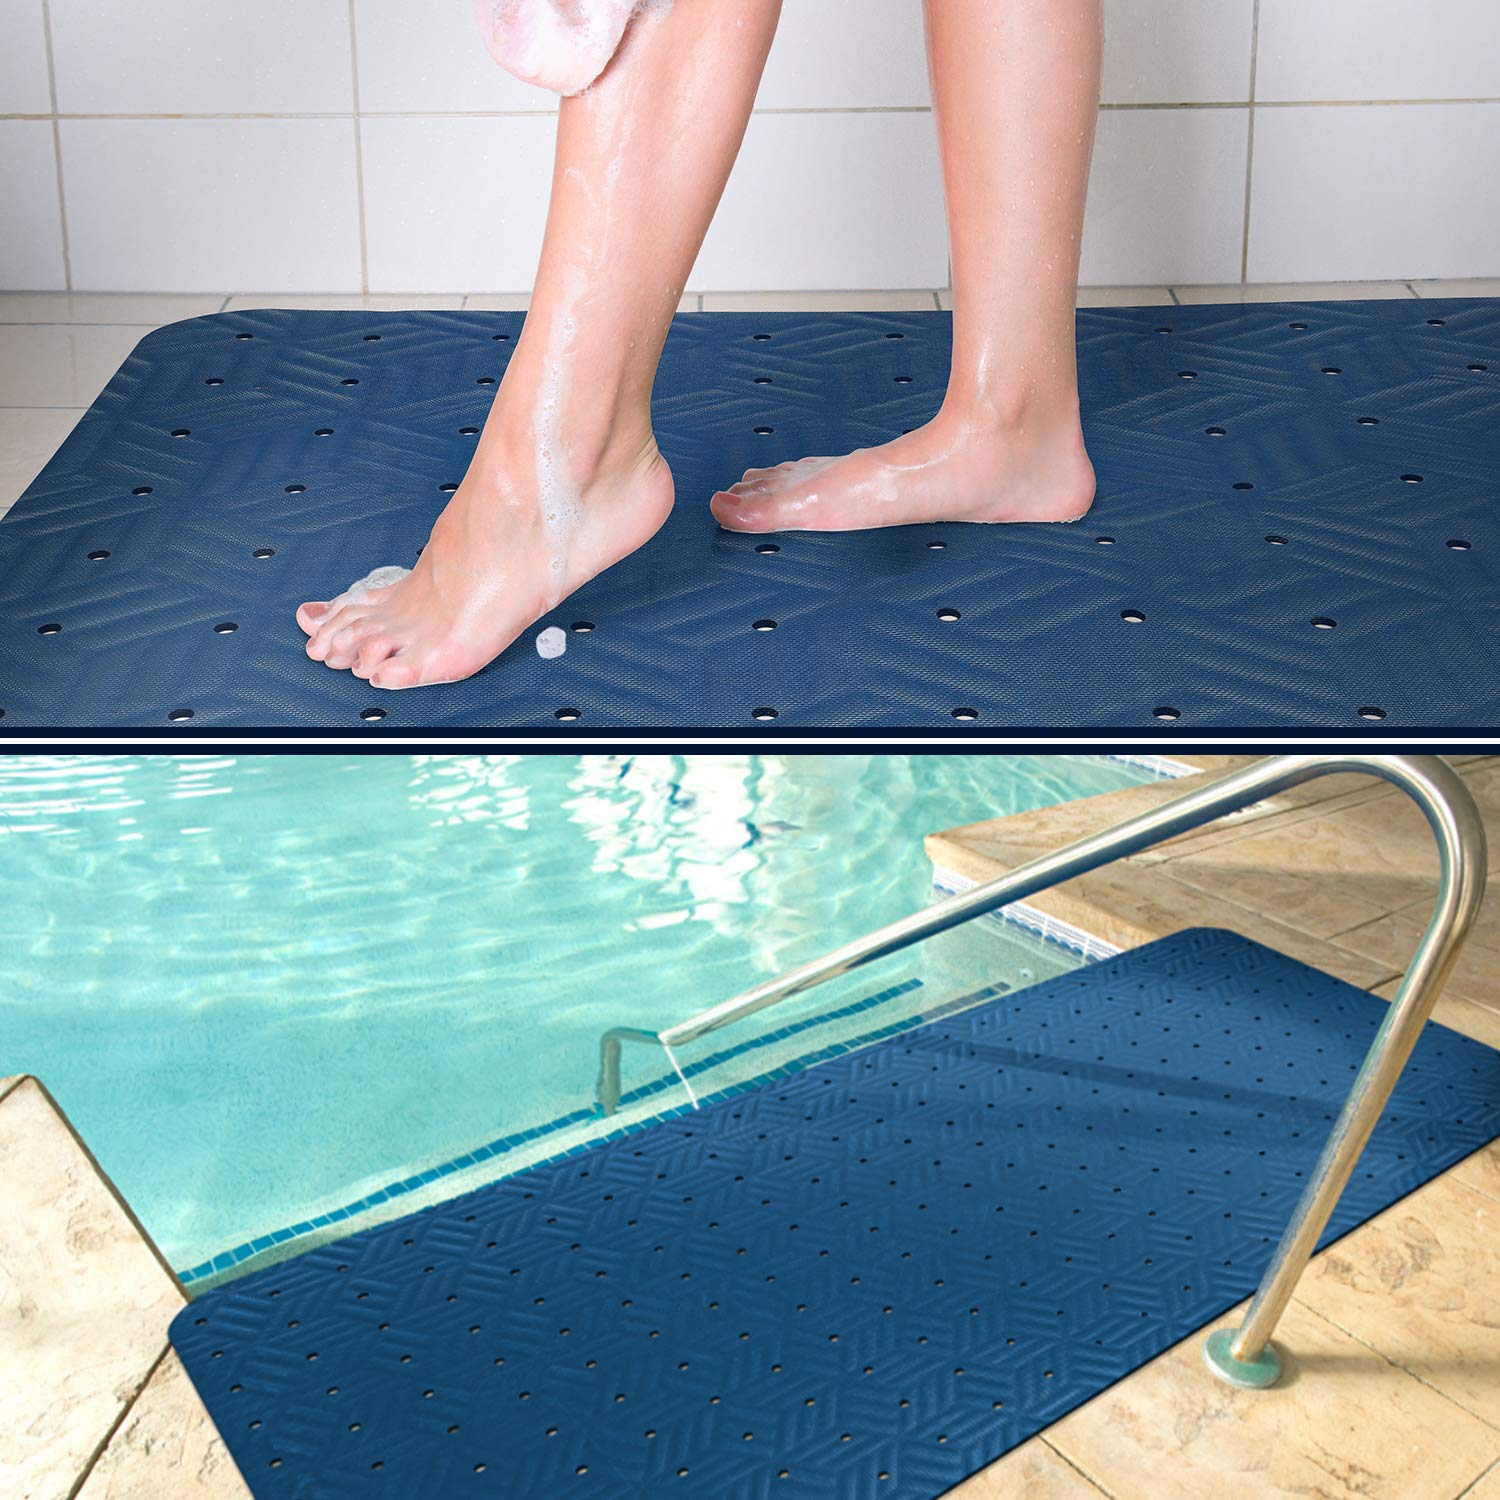 Wet Step Indoor/Outdoor Mat (2' x 3' Blue)-Non-Slip Antimicrobial Drainable Soft and Comfortable Anti-Fatigue Mat for Wet Areas - Locker Room, Shower, Swimming Pool Deck, Spa, Bathroom, by M+A Matting